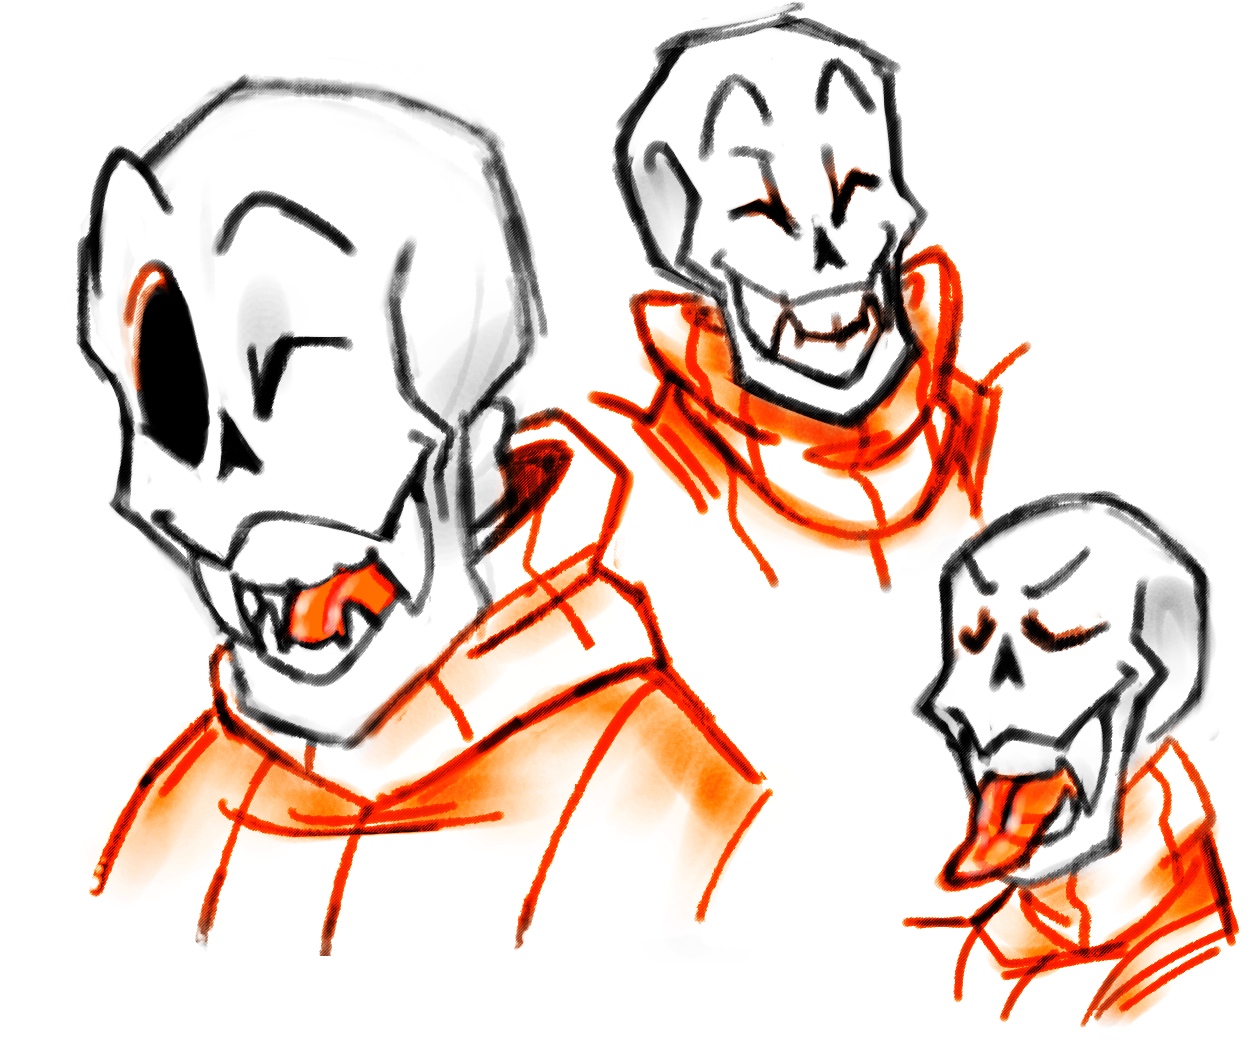 Vampire Papyrus Images - Reverse Search